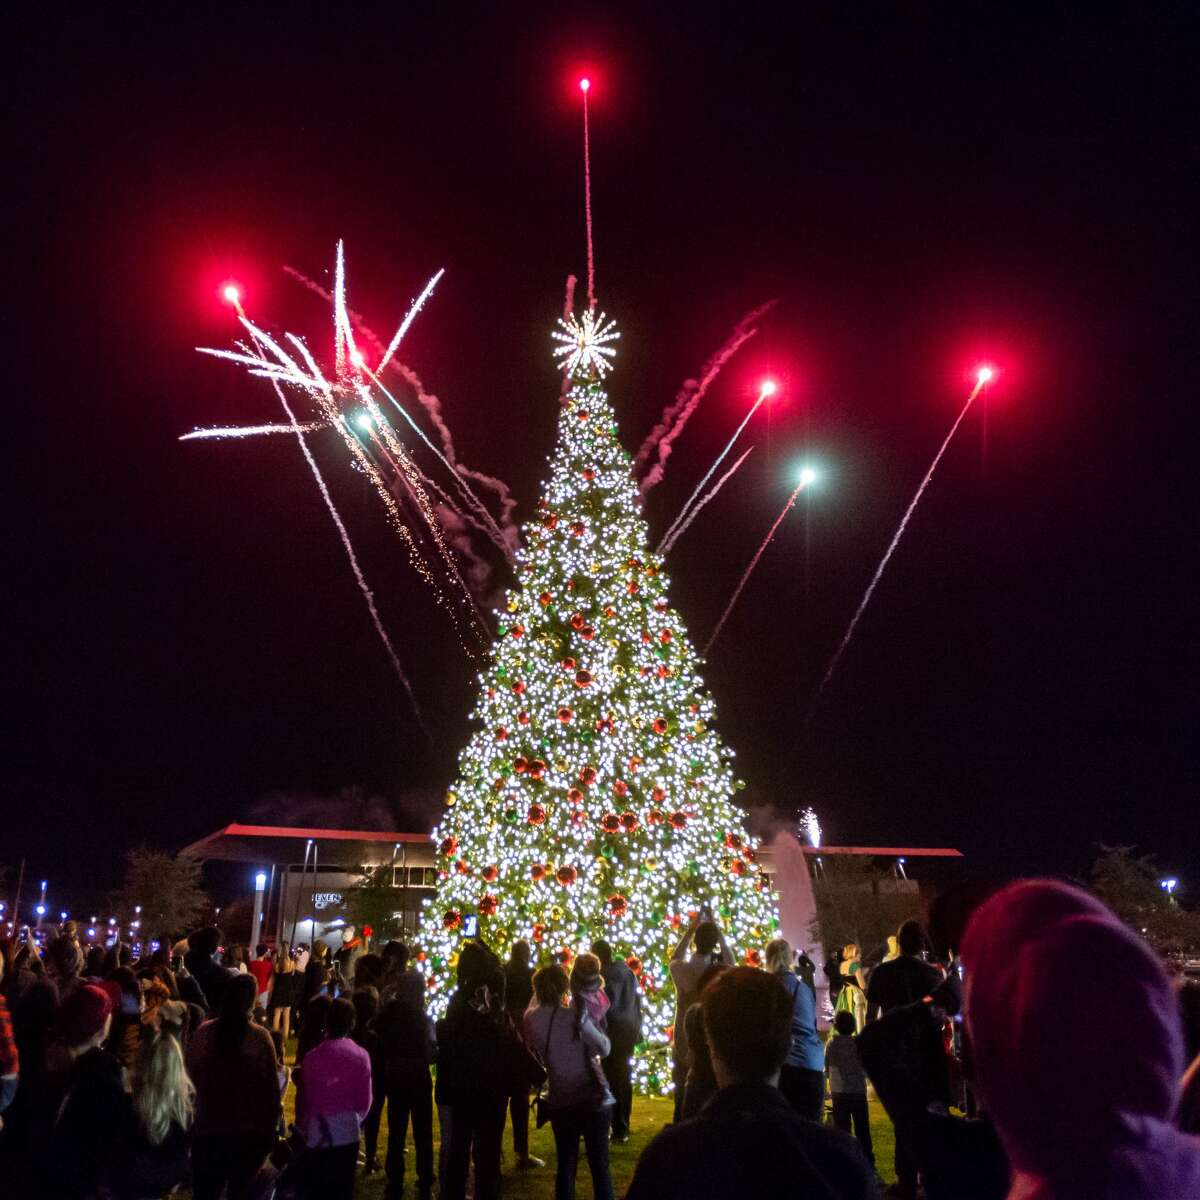 Hundreds of people came out as the City of Beaumont held their annual celebration of the lighting of the city Christmas tree on Wednesday, December 4, 2019 at the Downtown Event Centre with fireworks, live music, dance, food trucks and other vendors. Santa and the Frozen princesses were also on hand to delight the little ones. Fran Ruchalski/The Enterprise